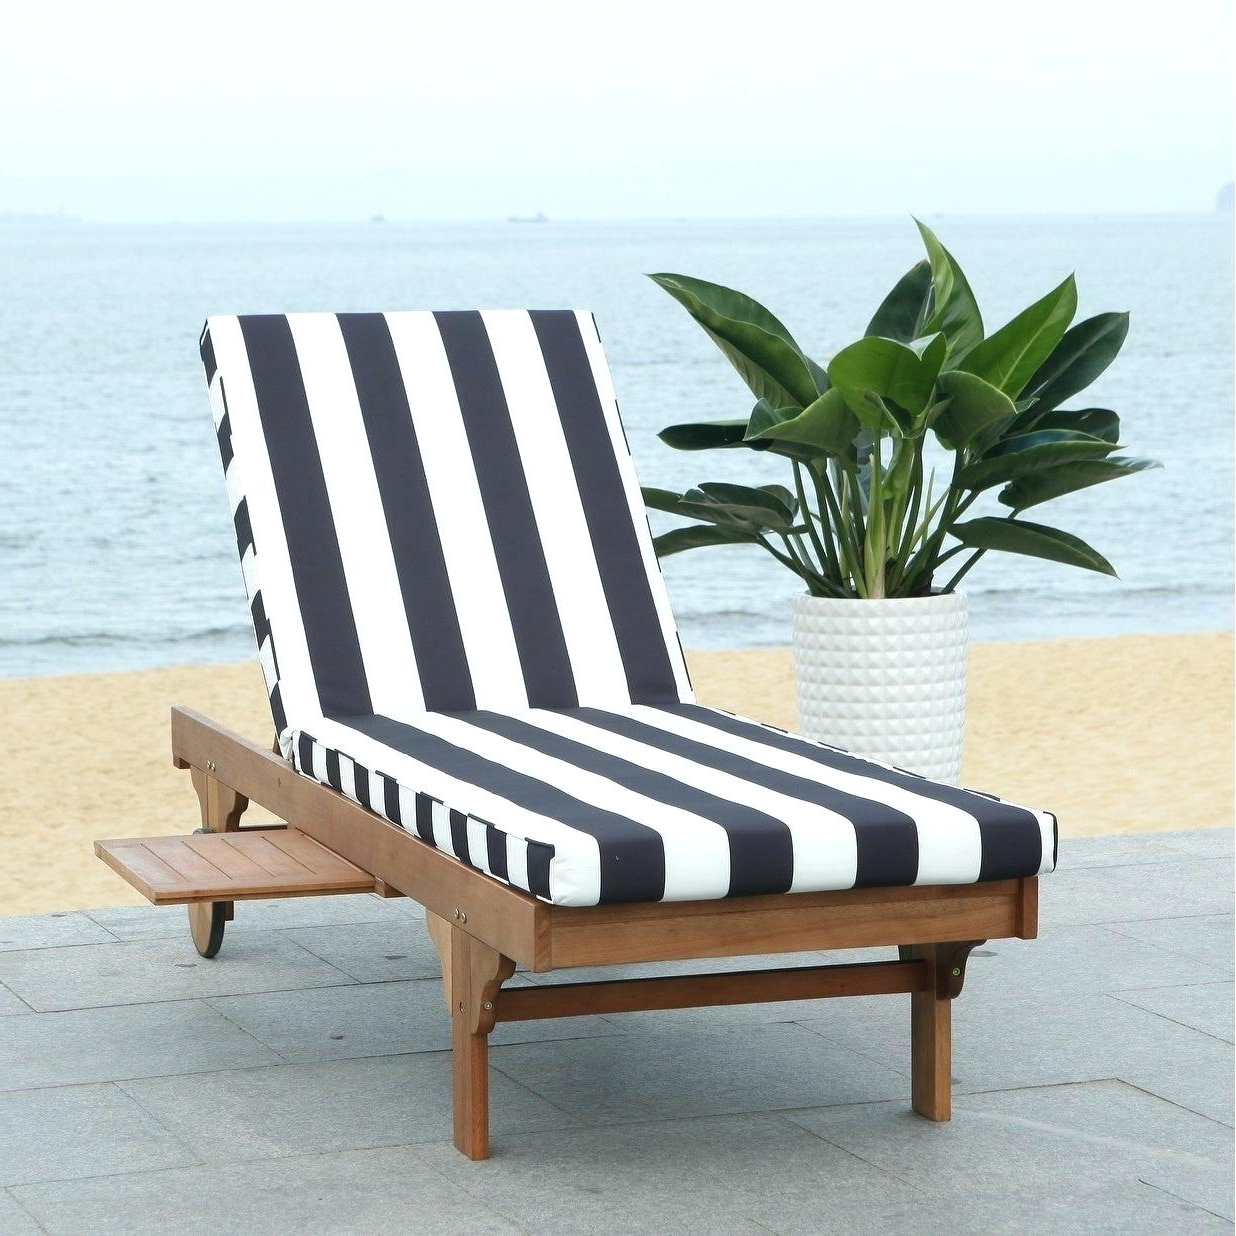 Current Floral Blossom Chaise Lounge Chairs With Cushion With White Chaise Lounge Chair – Glorygame (View 7 of 25)